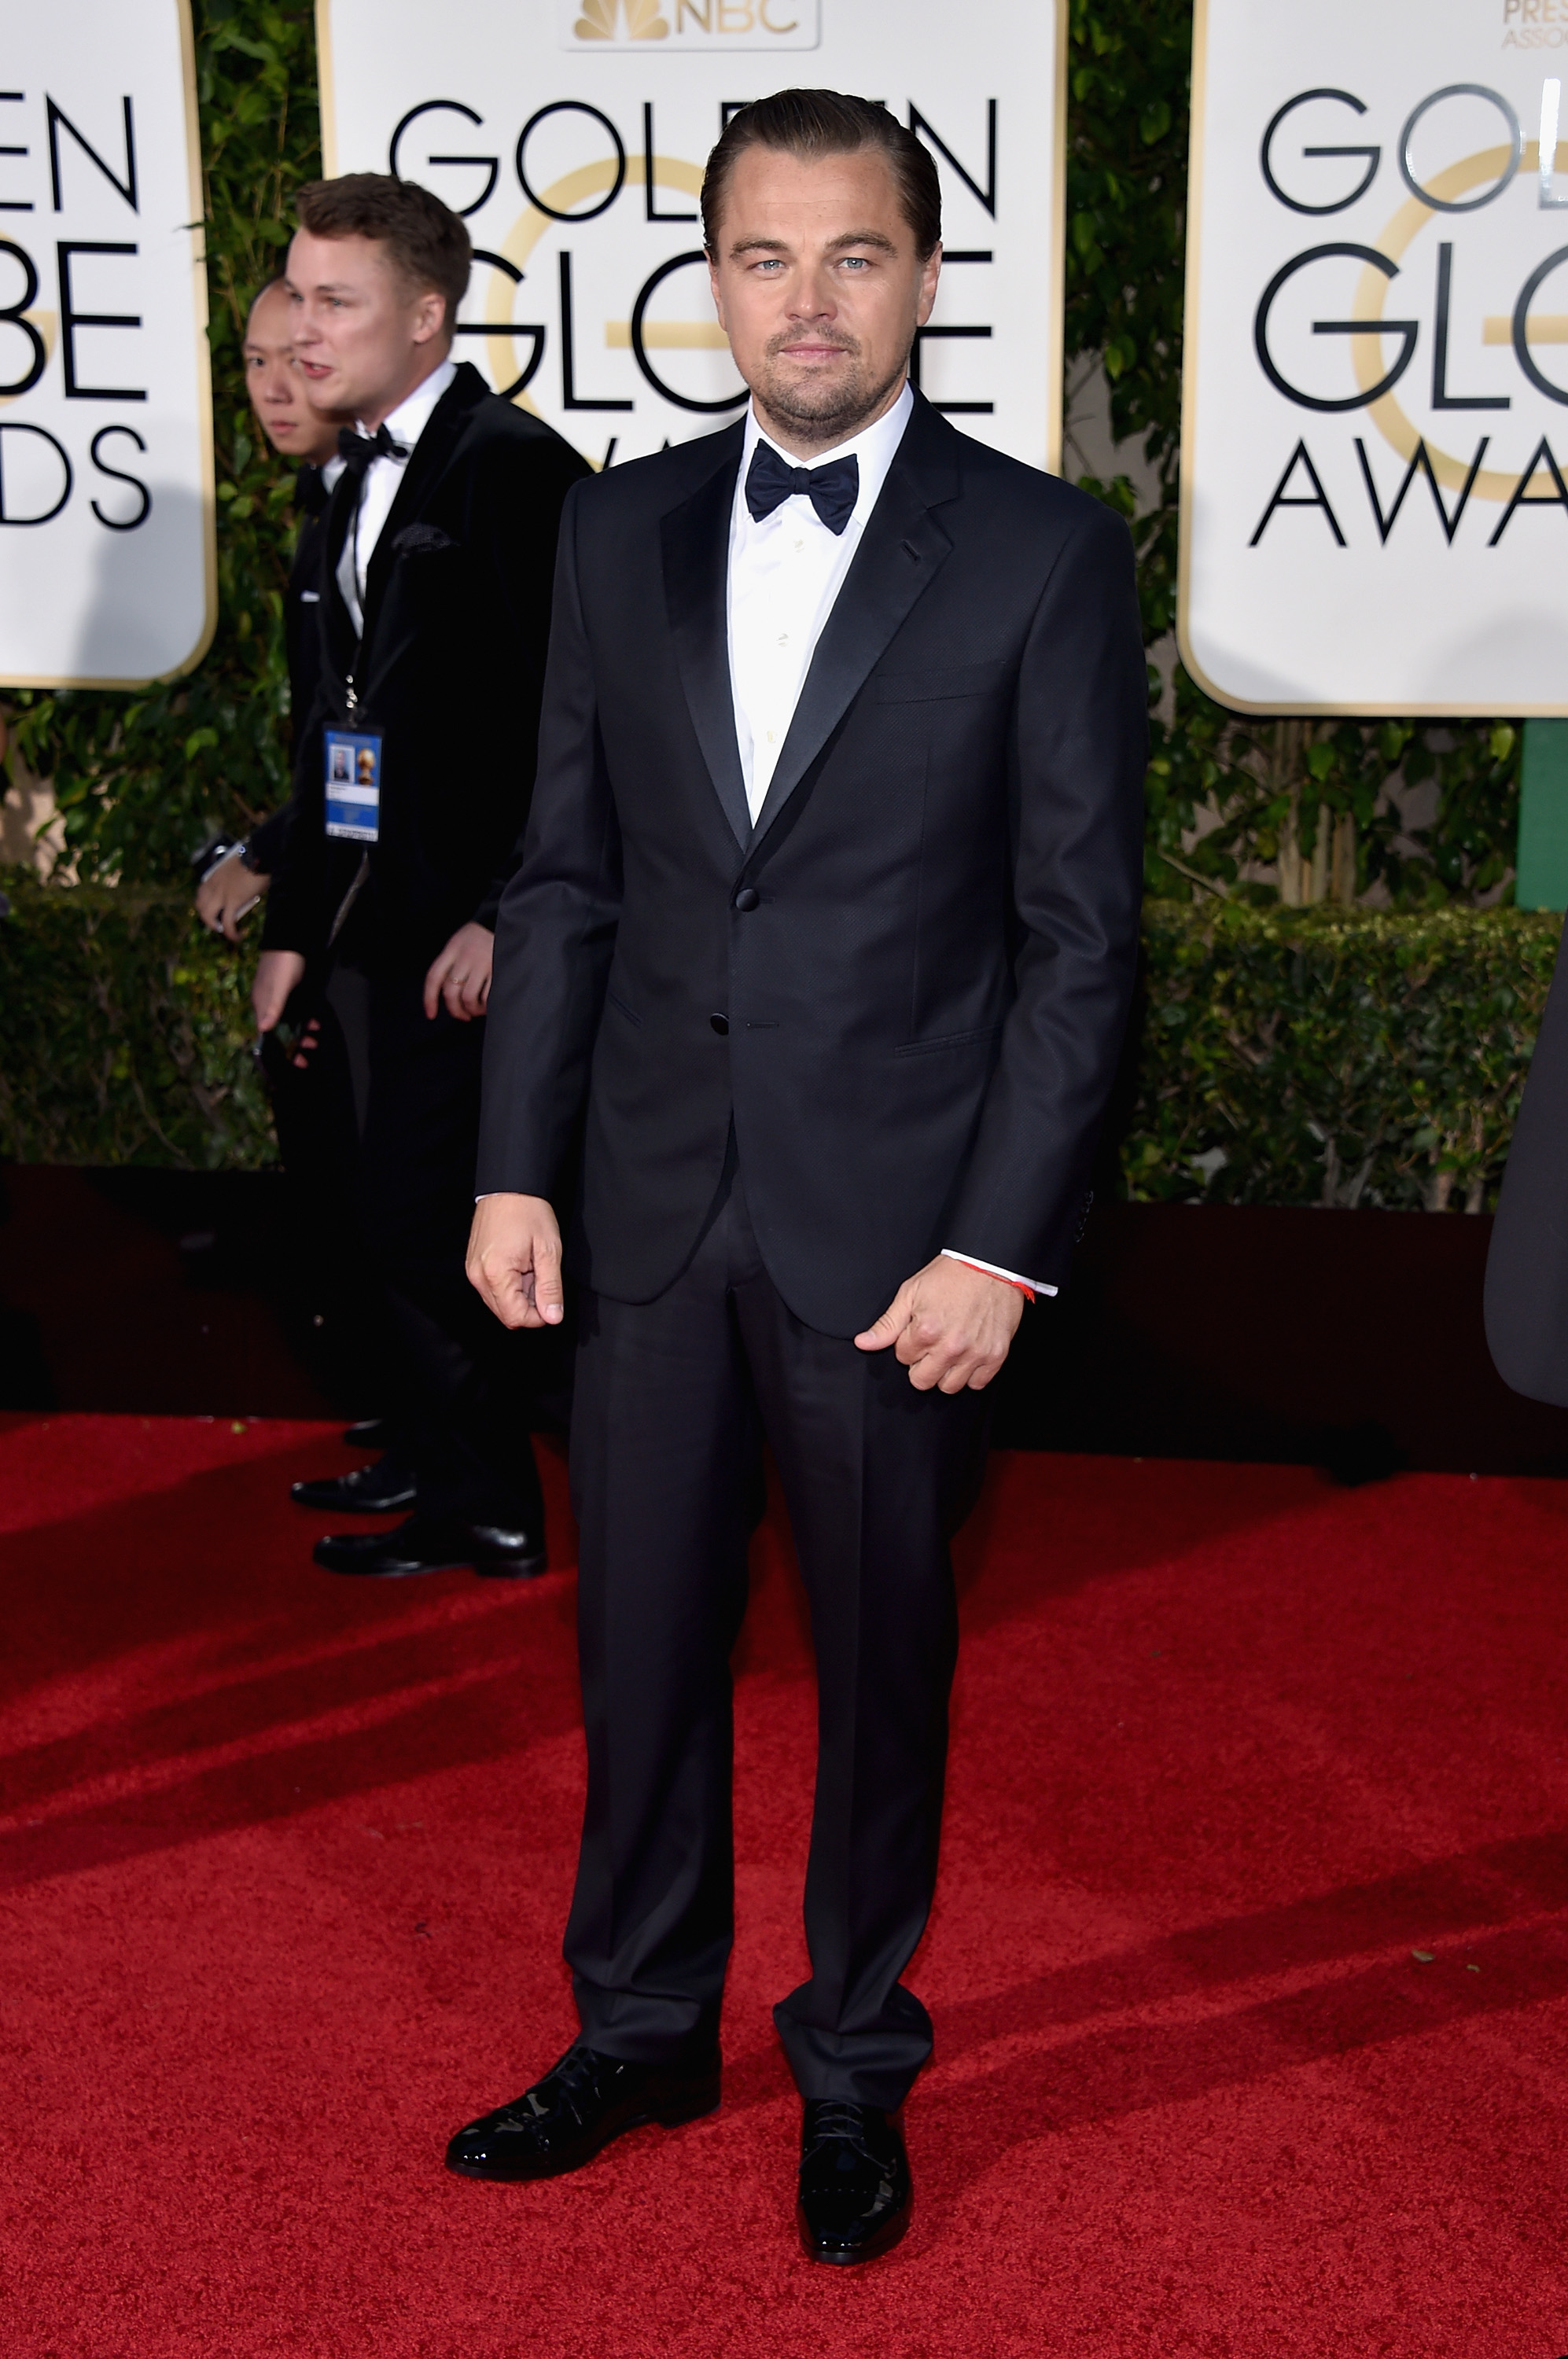 Leonardo DiCaprio arrives to the 73rd Annual Golden Globe Awards on Jan. 10, 2016 in Beverly Hills.